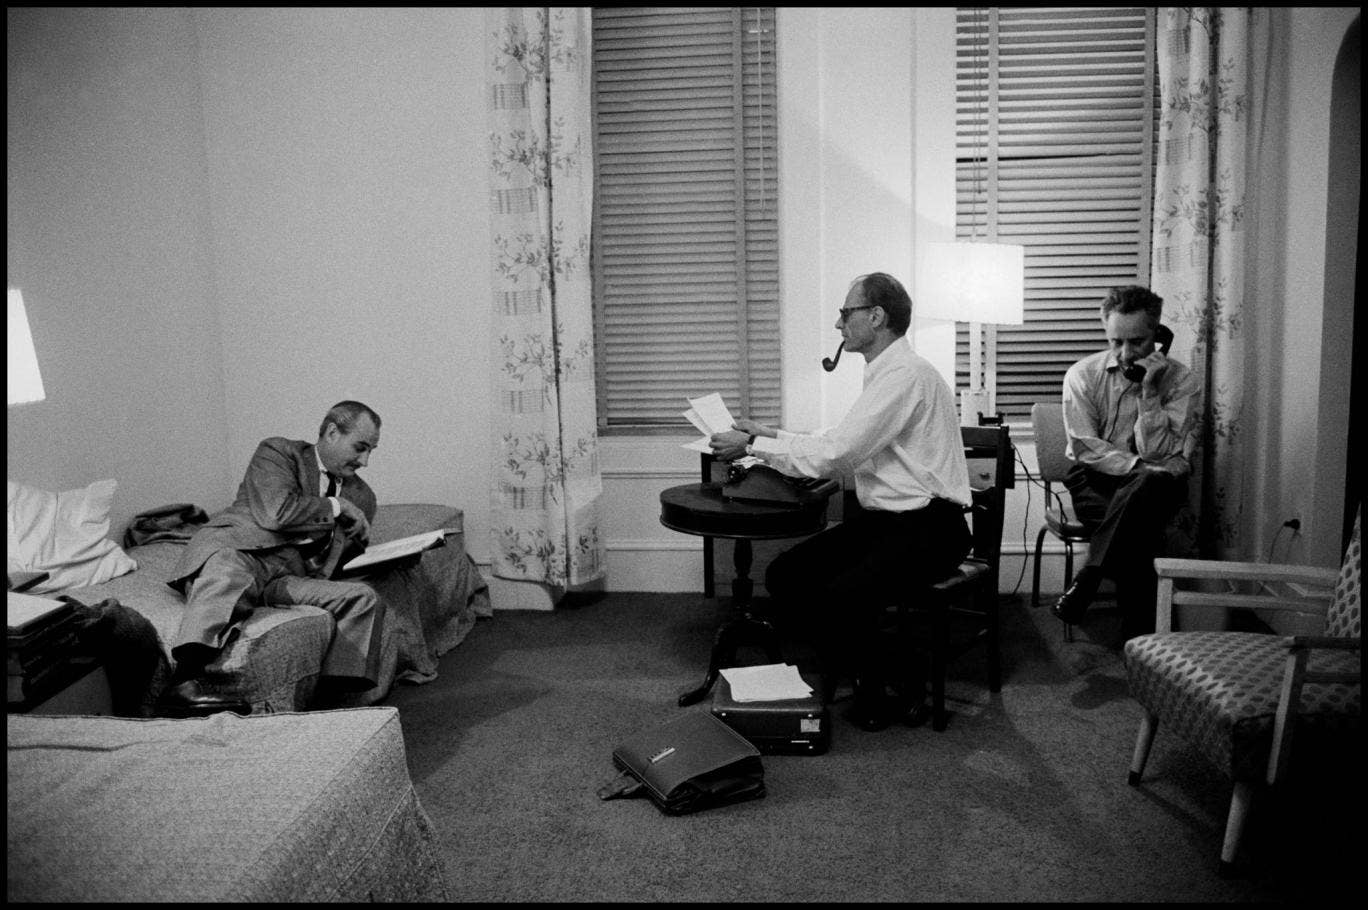 Robert Whitehead, Arthur Miller and Elia Kazan working on the production of the play 'After the Fall' in the Chelsea Hotel, 1963